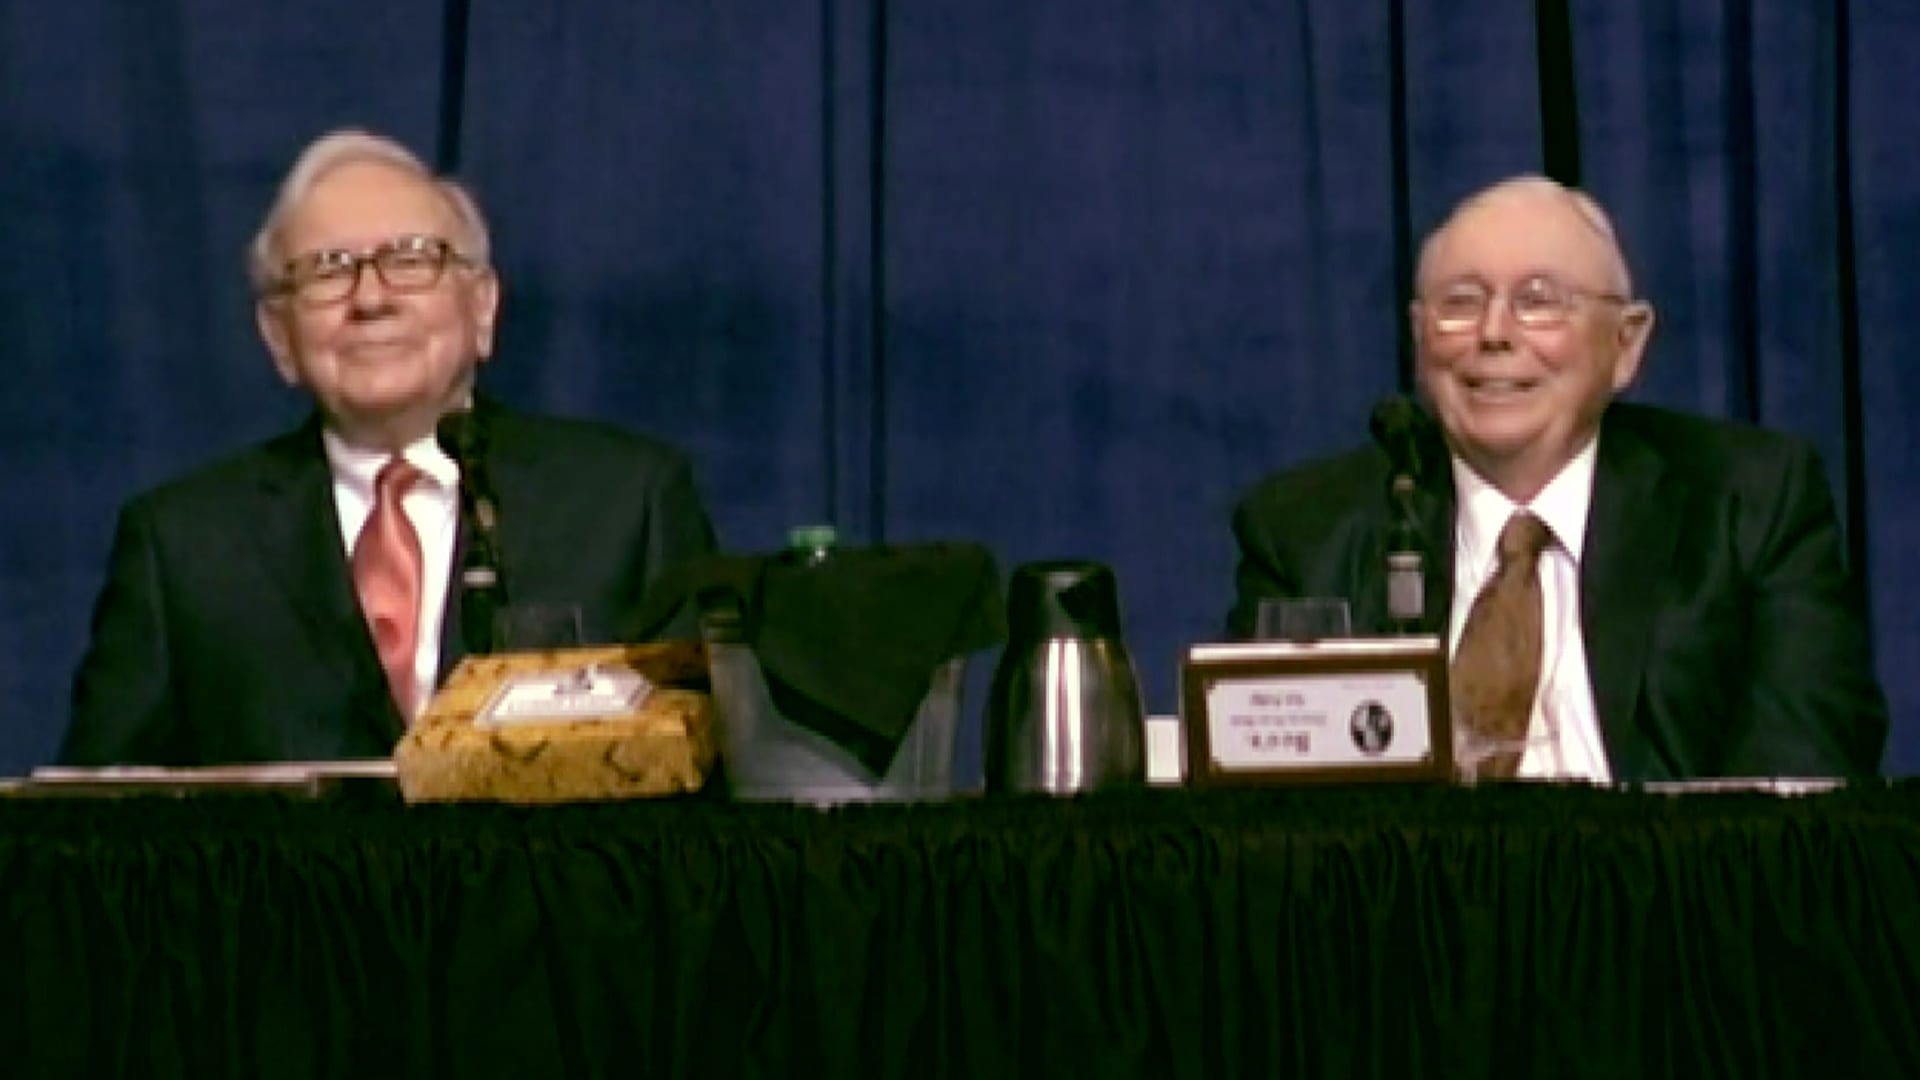 c51c33ab0f6 Morning Session - 2011 Berkshire Hathaway Annual Meeting